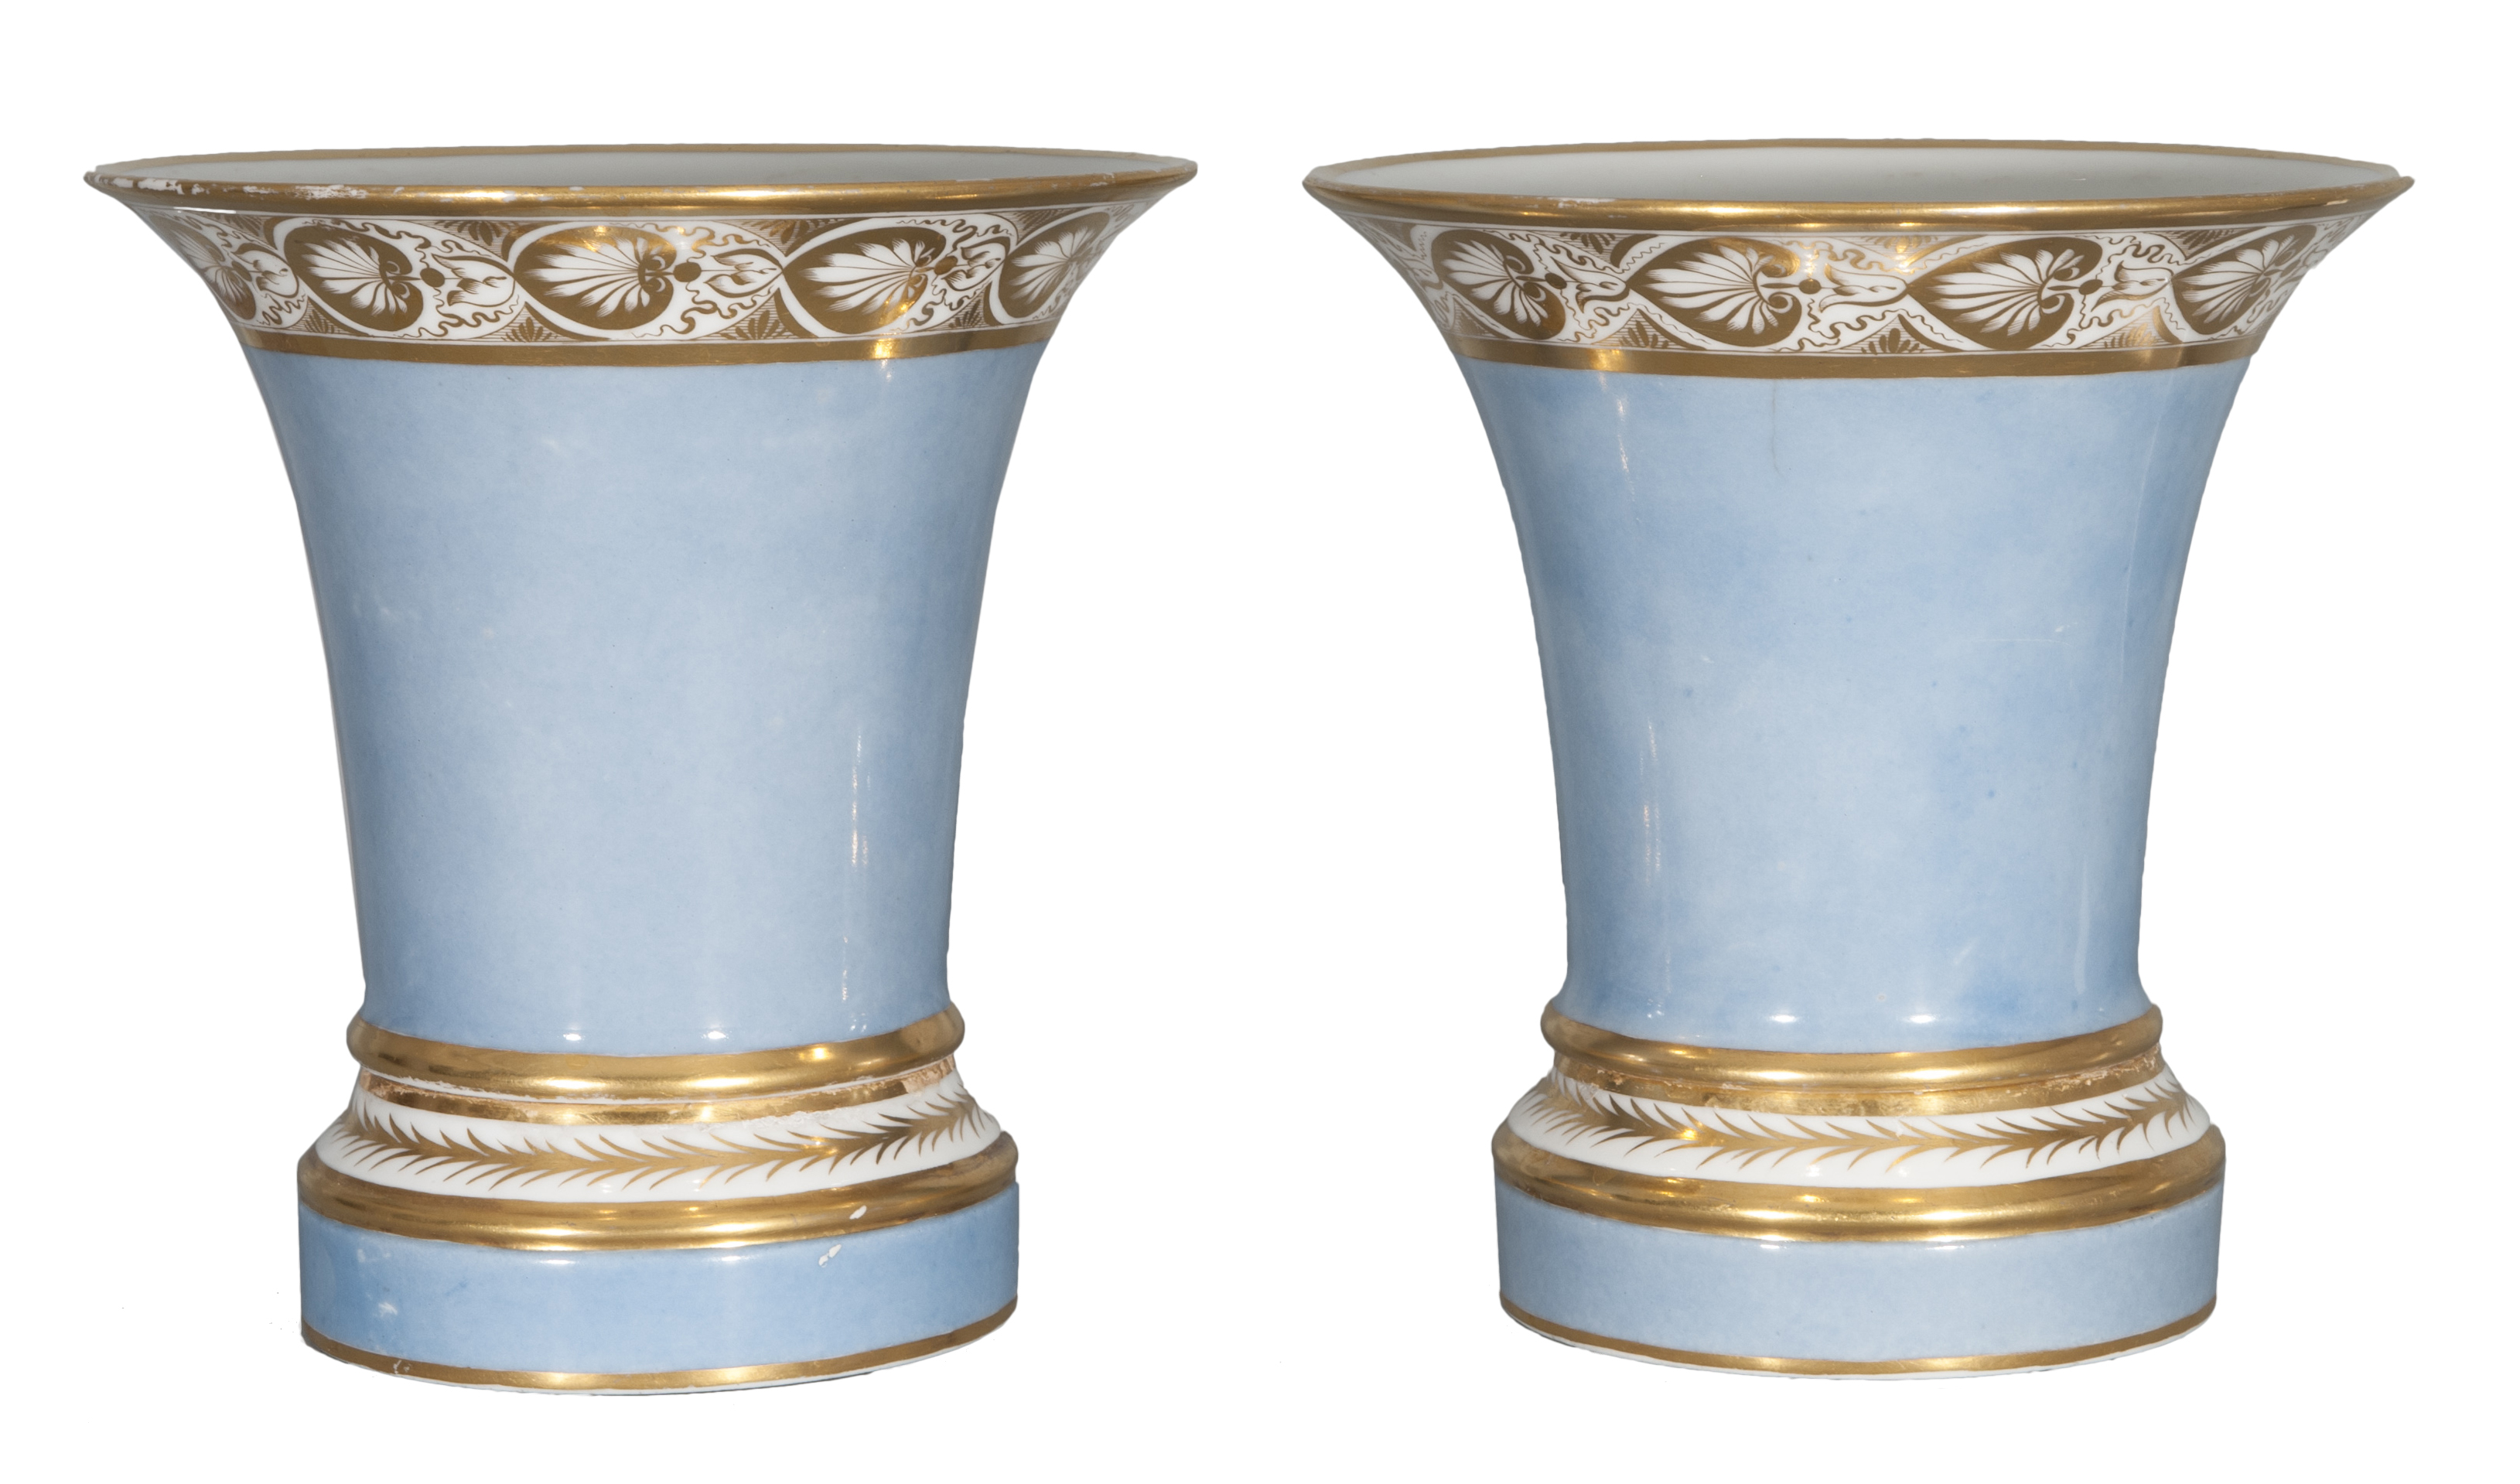 A pair of elegant Empire trumpet vases